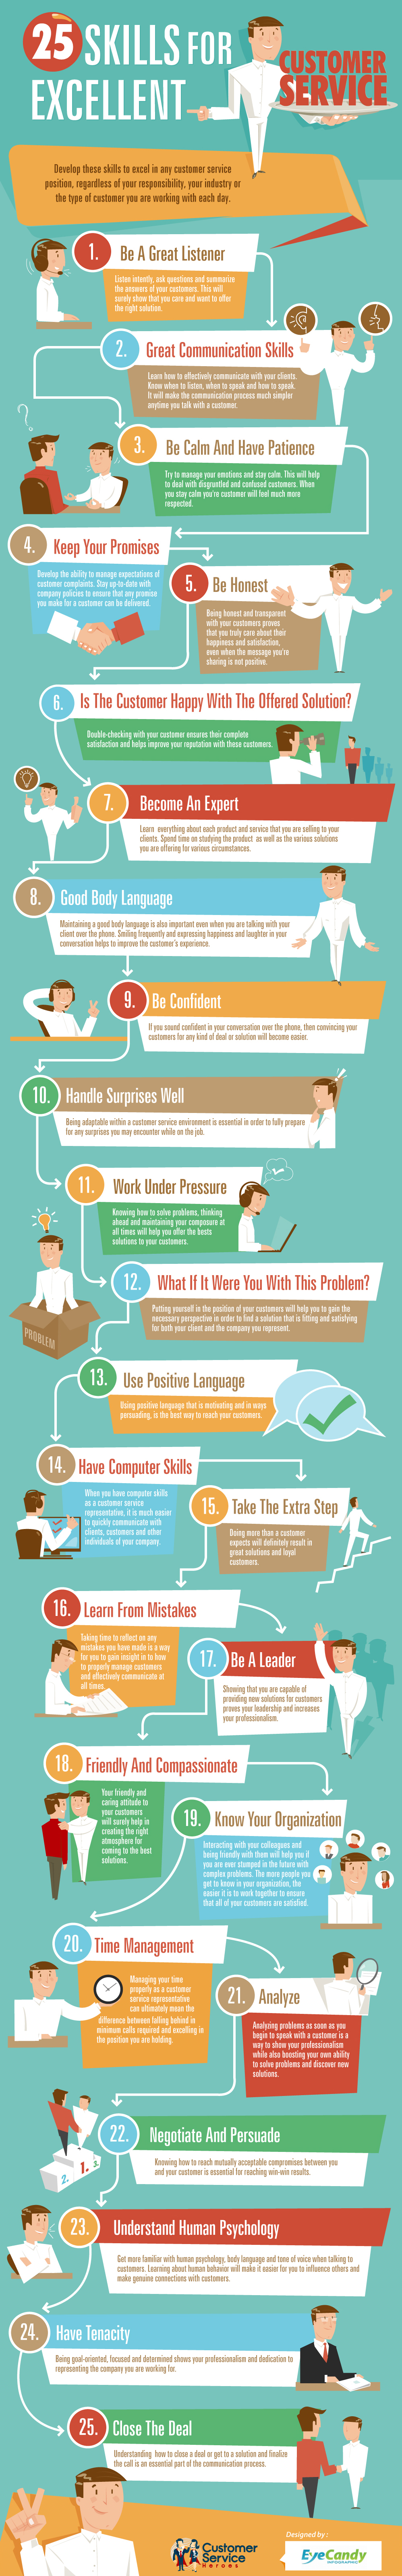 25 Skills Required for Excellent Customer Service.jpg